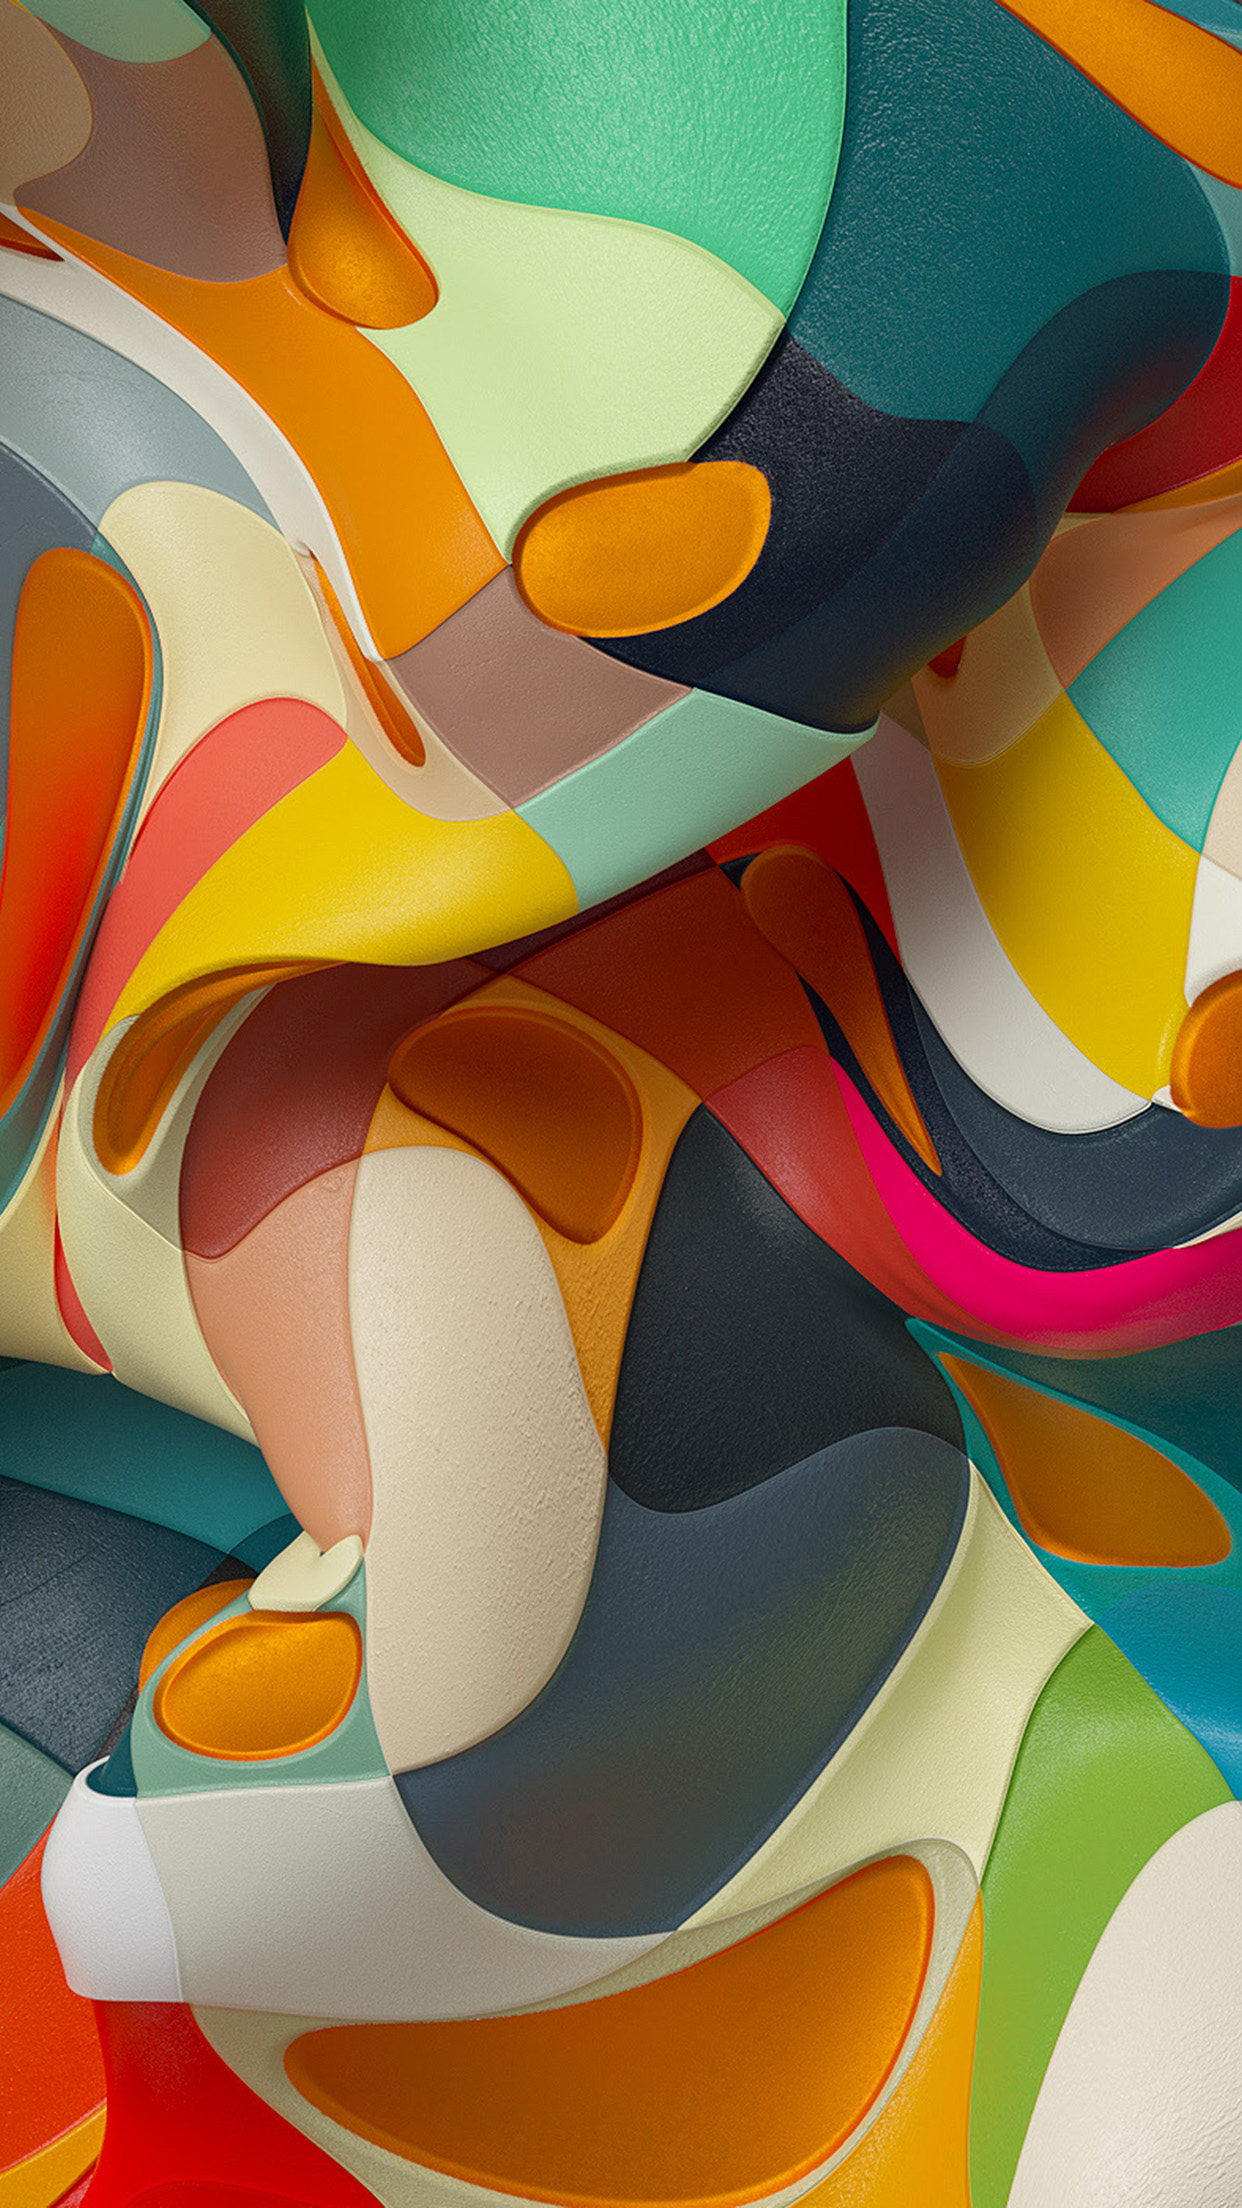 Iphone6papers Com Iphone 6 Wallpaper Wc54 3d Abstract